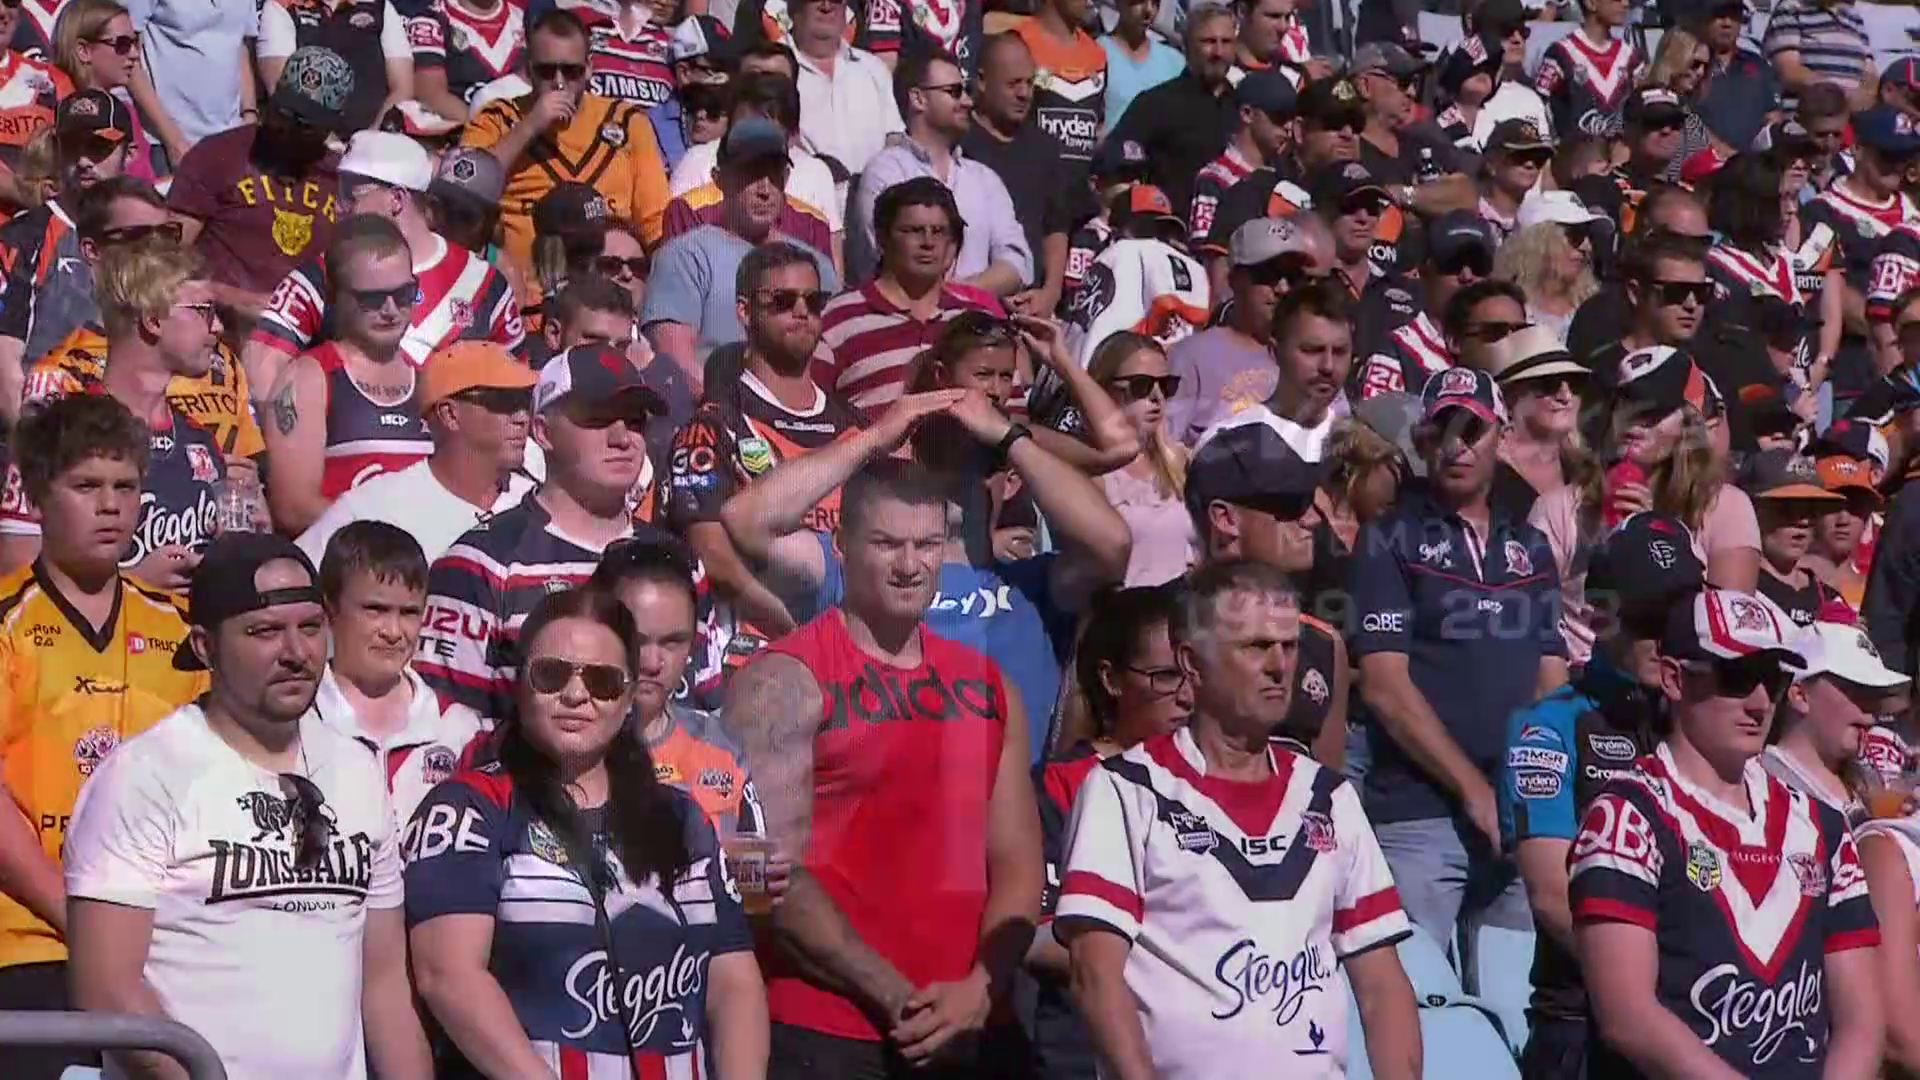 NRL 2018 RD01 Wests Tigers v Roosters